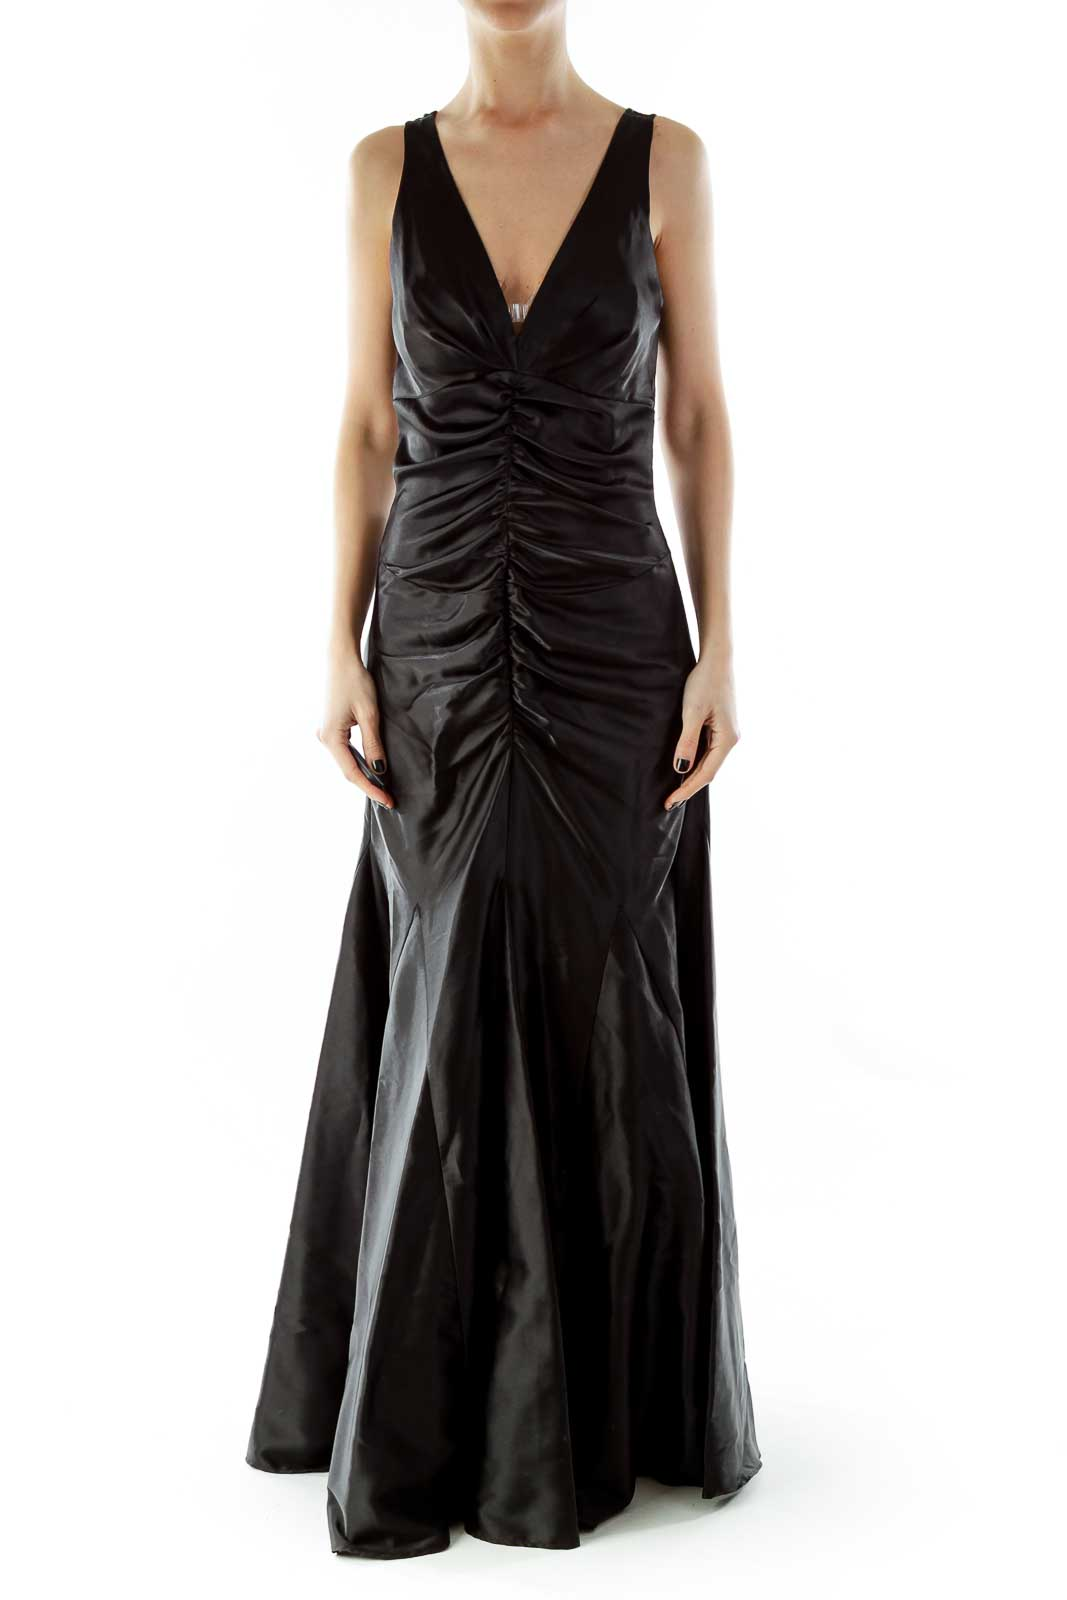 Black V-Neck Scrunched Lace Evening Dress